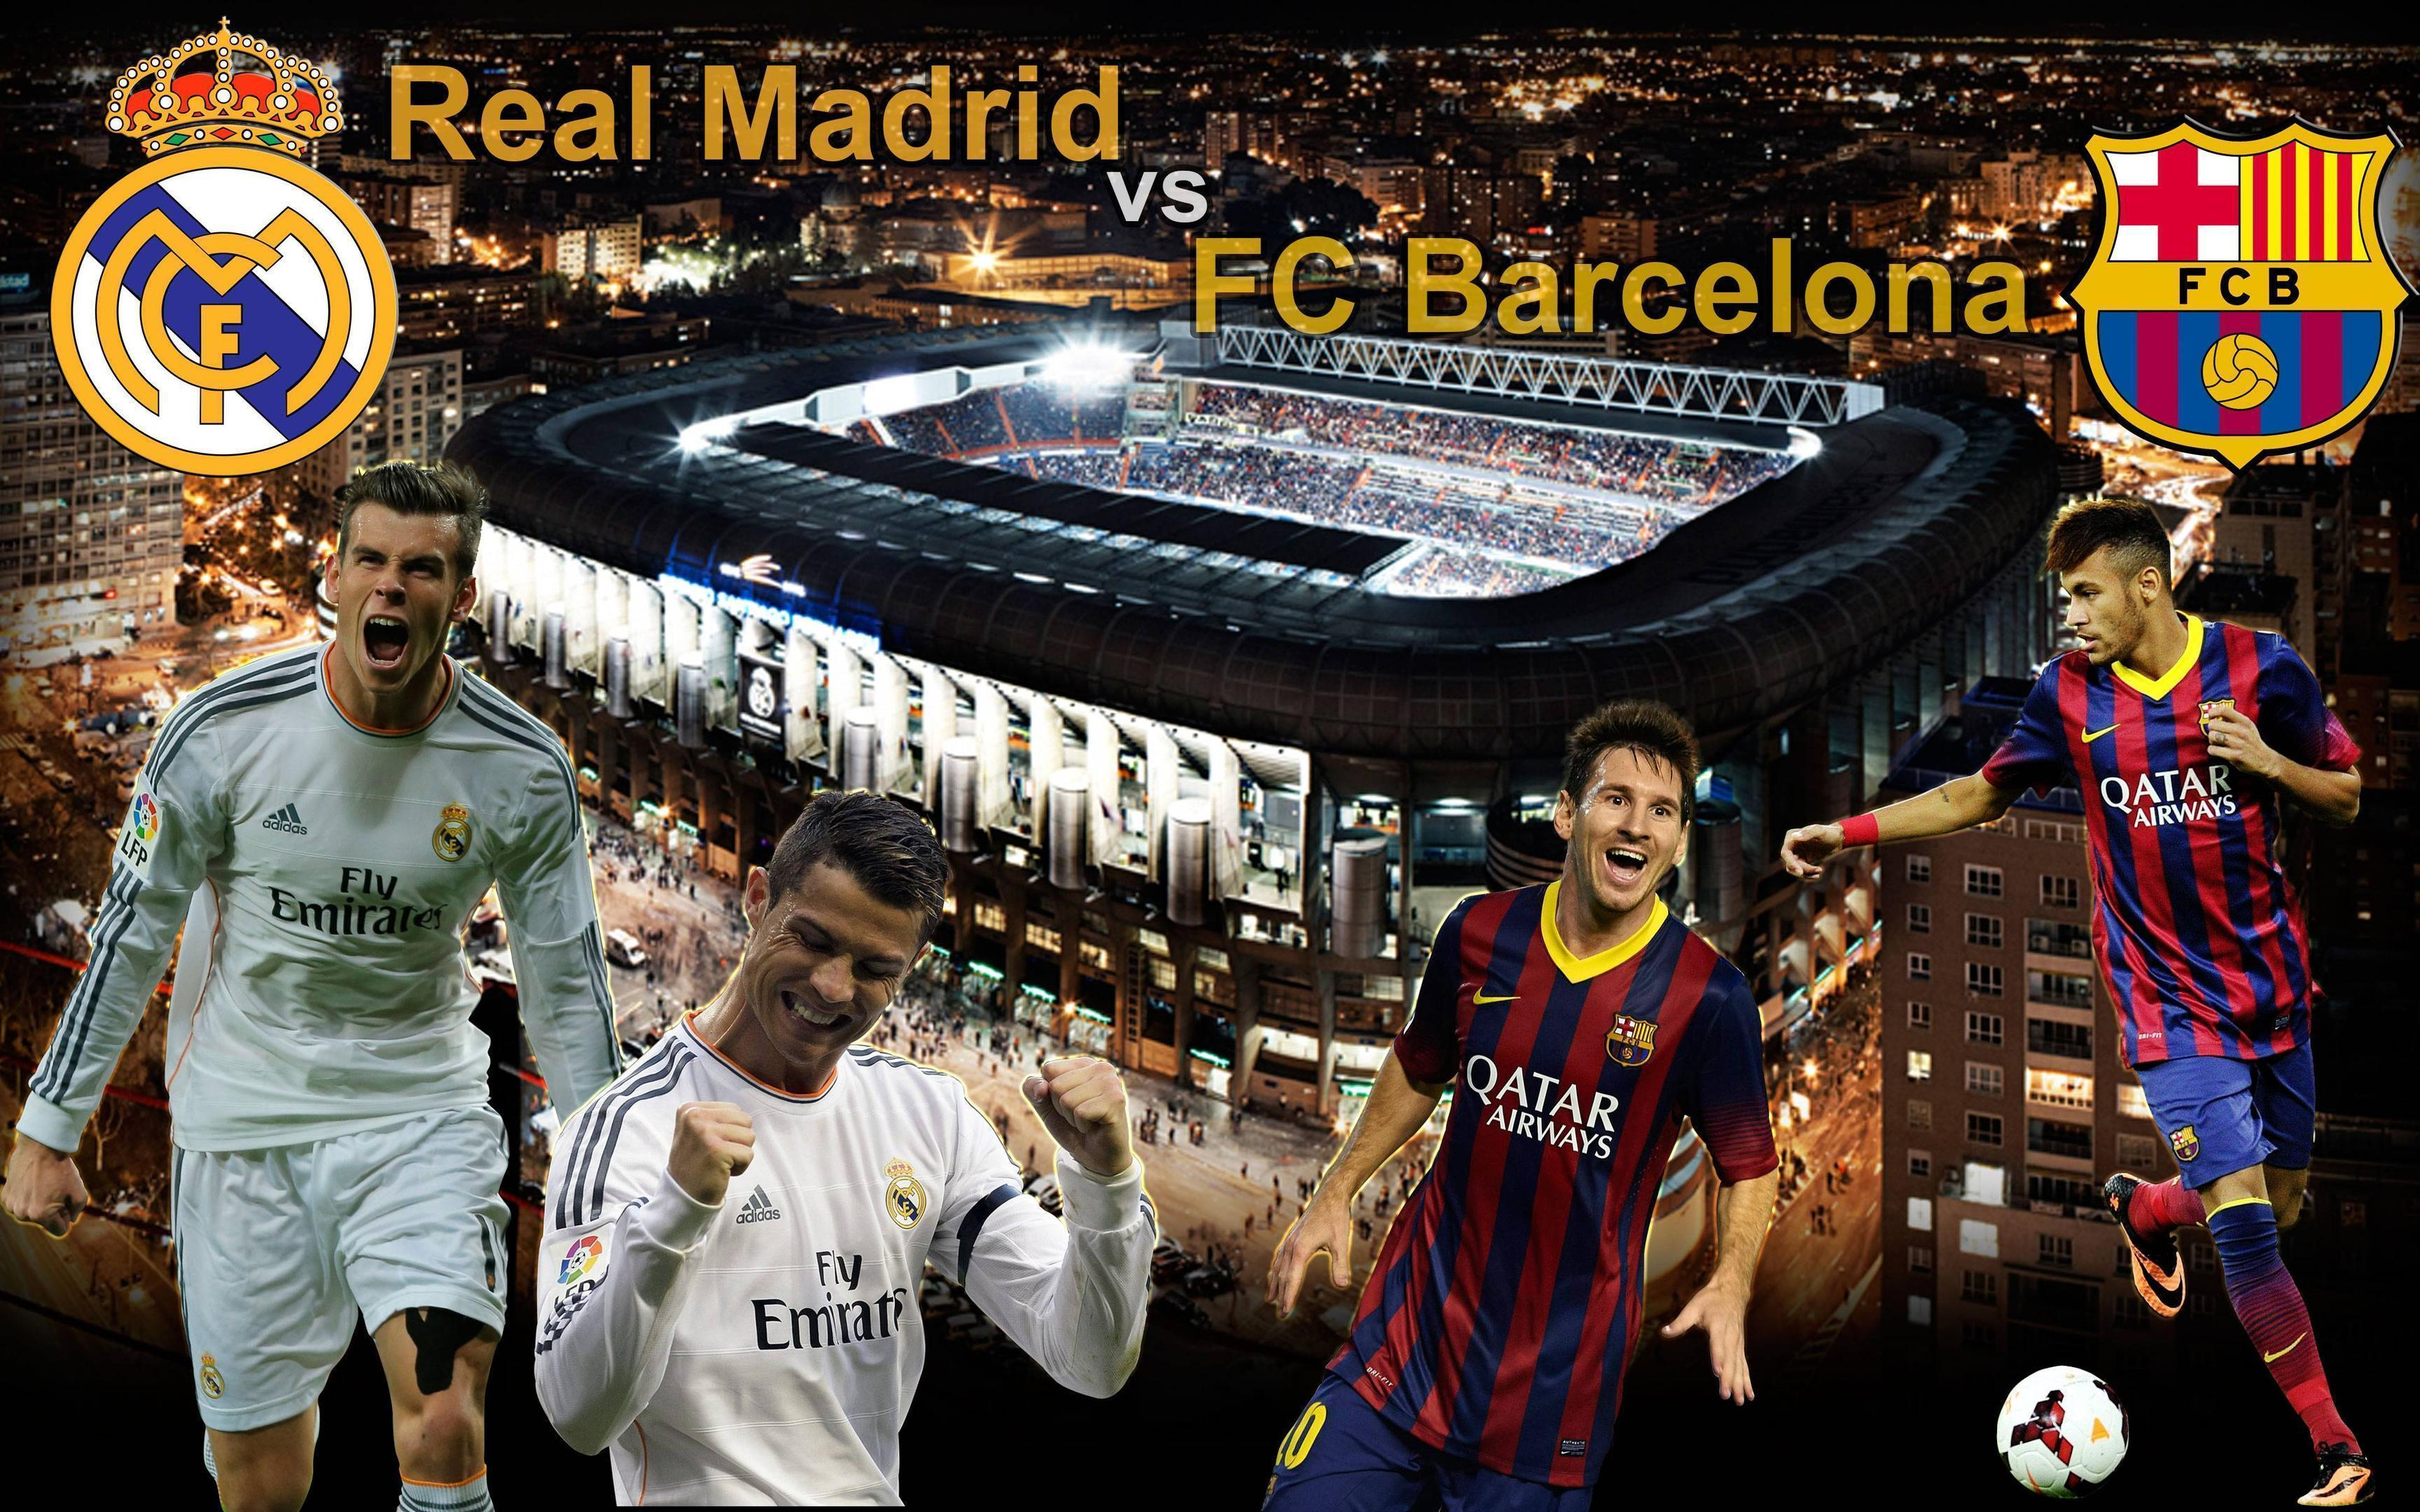 FC Barcelona vs Real Madrid 2014